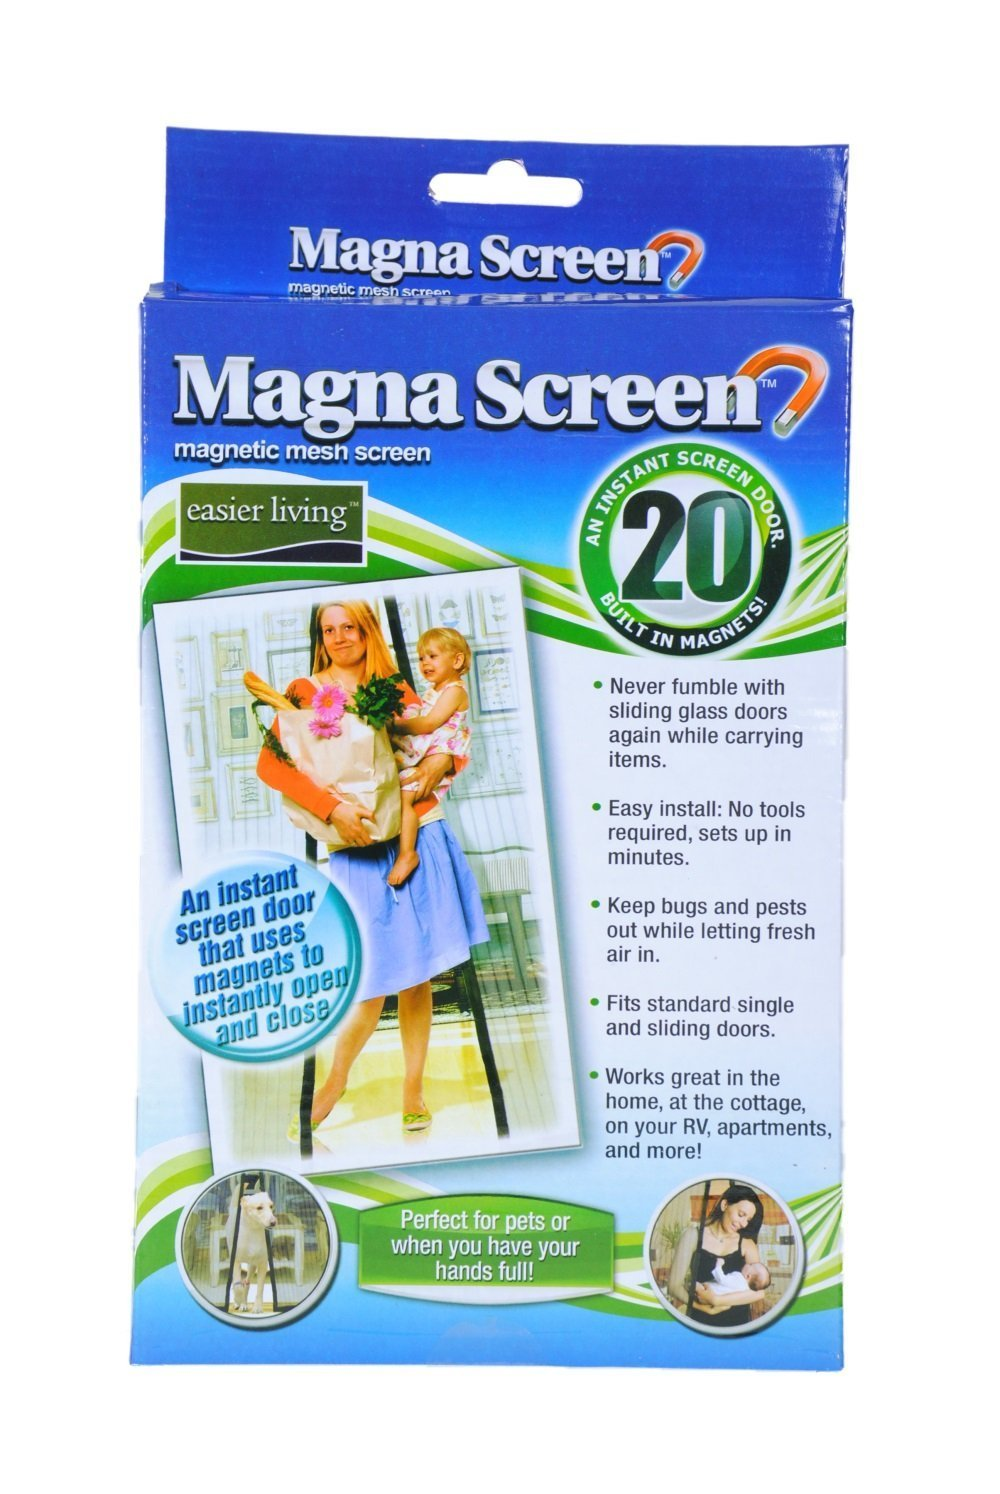 New Magna Screen Magnetic Mesh Instant Magic Screen w/ 20 Magnets Single & Sliding Doors Bugs Off